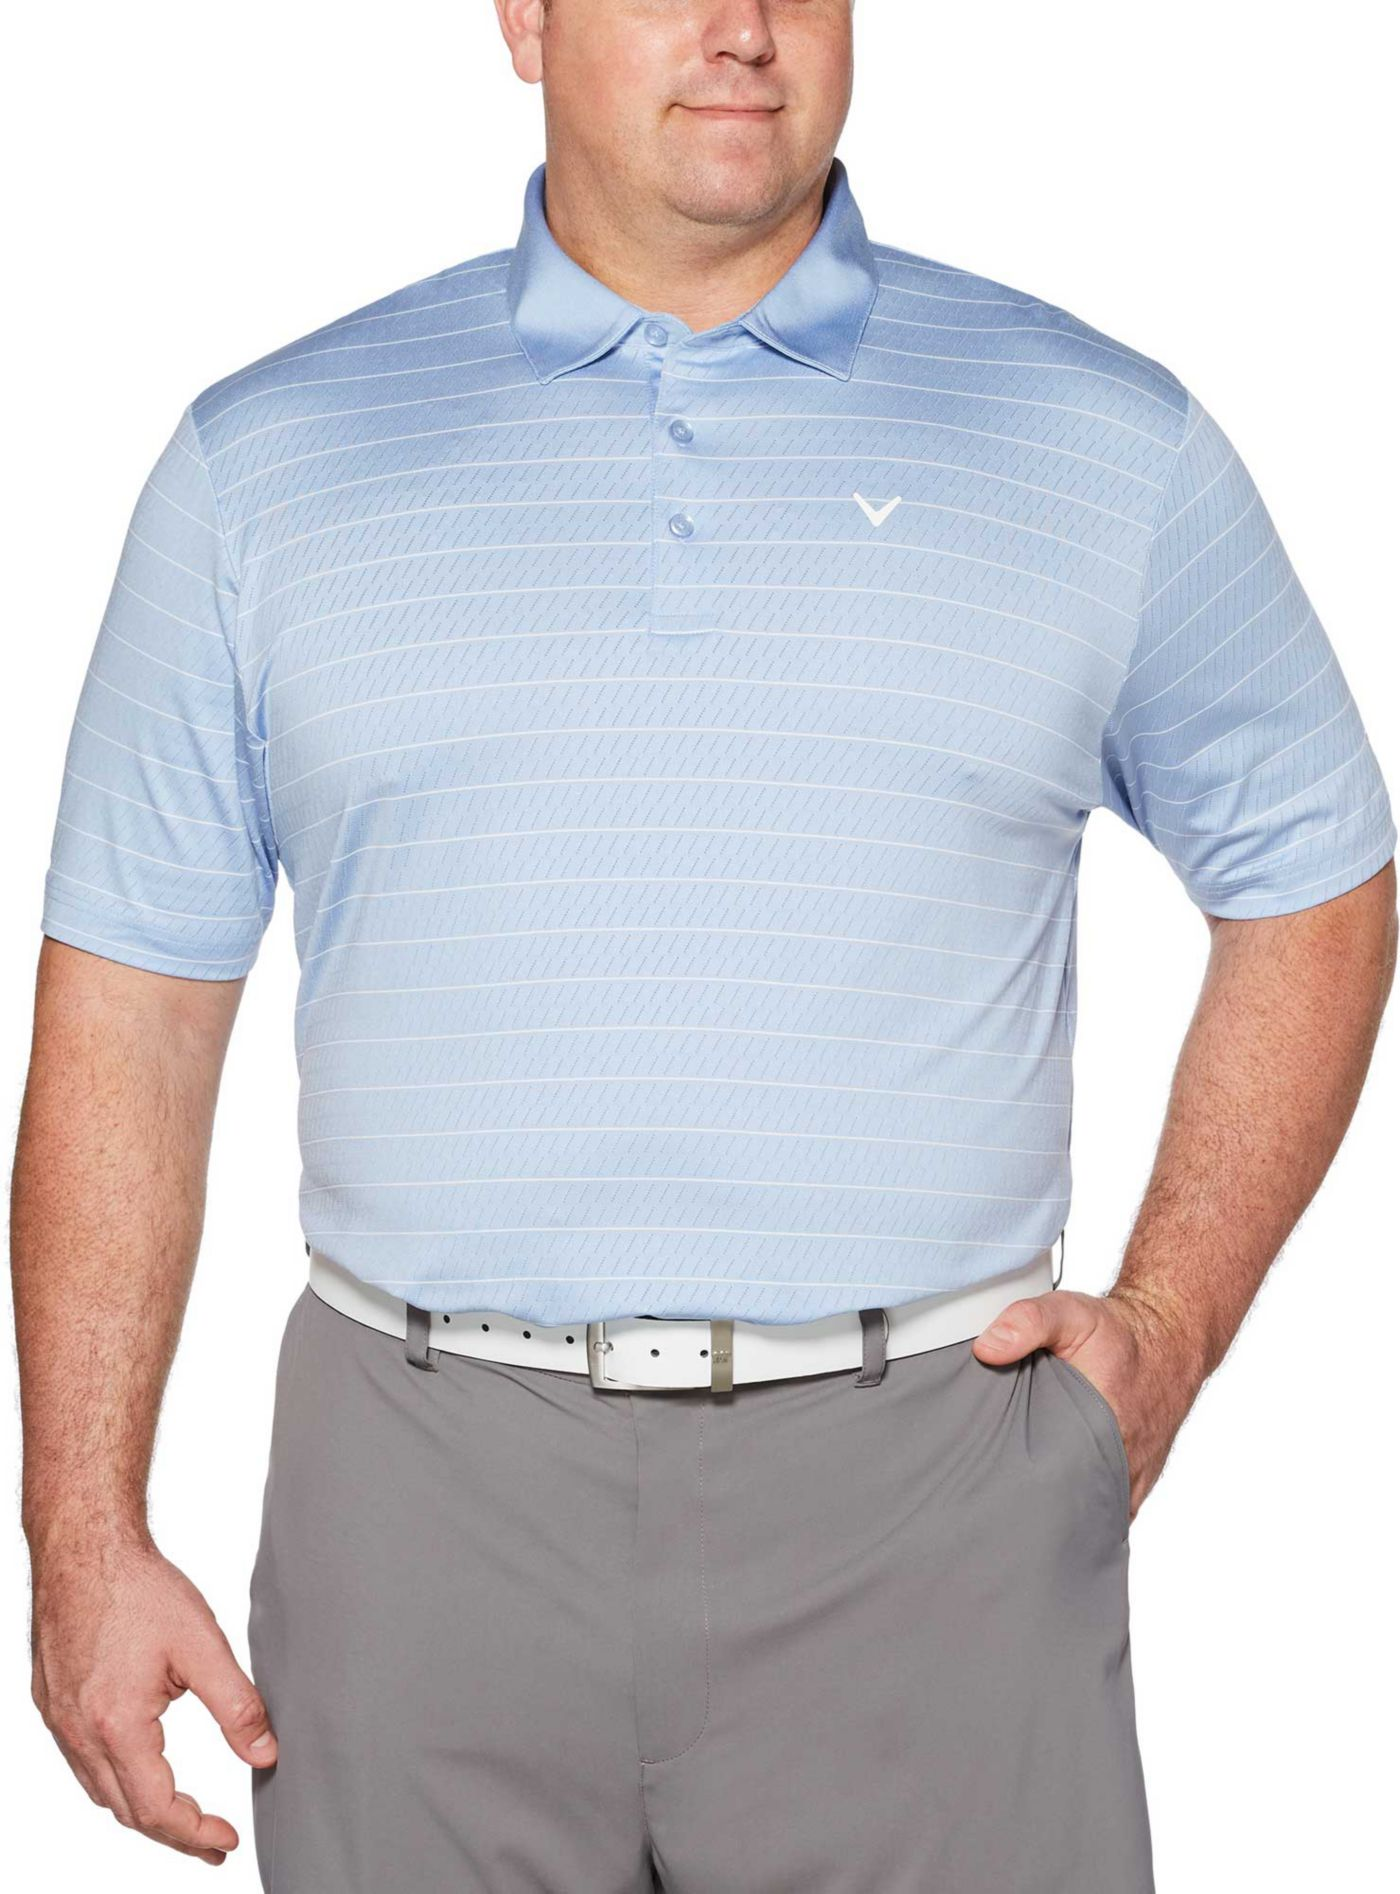 Callaway Men's Ventilated Stripe Golf Polo - Big & Tall